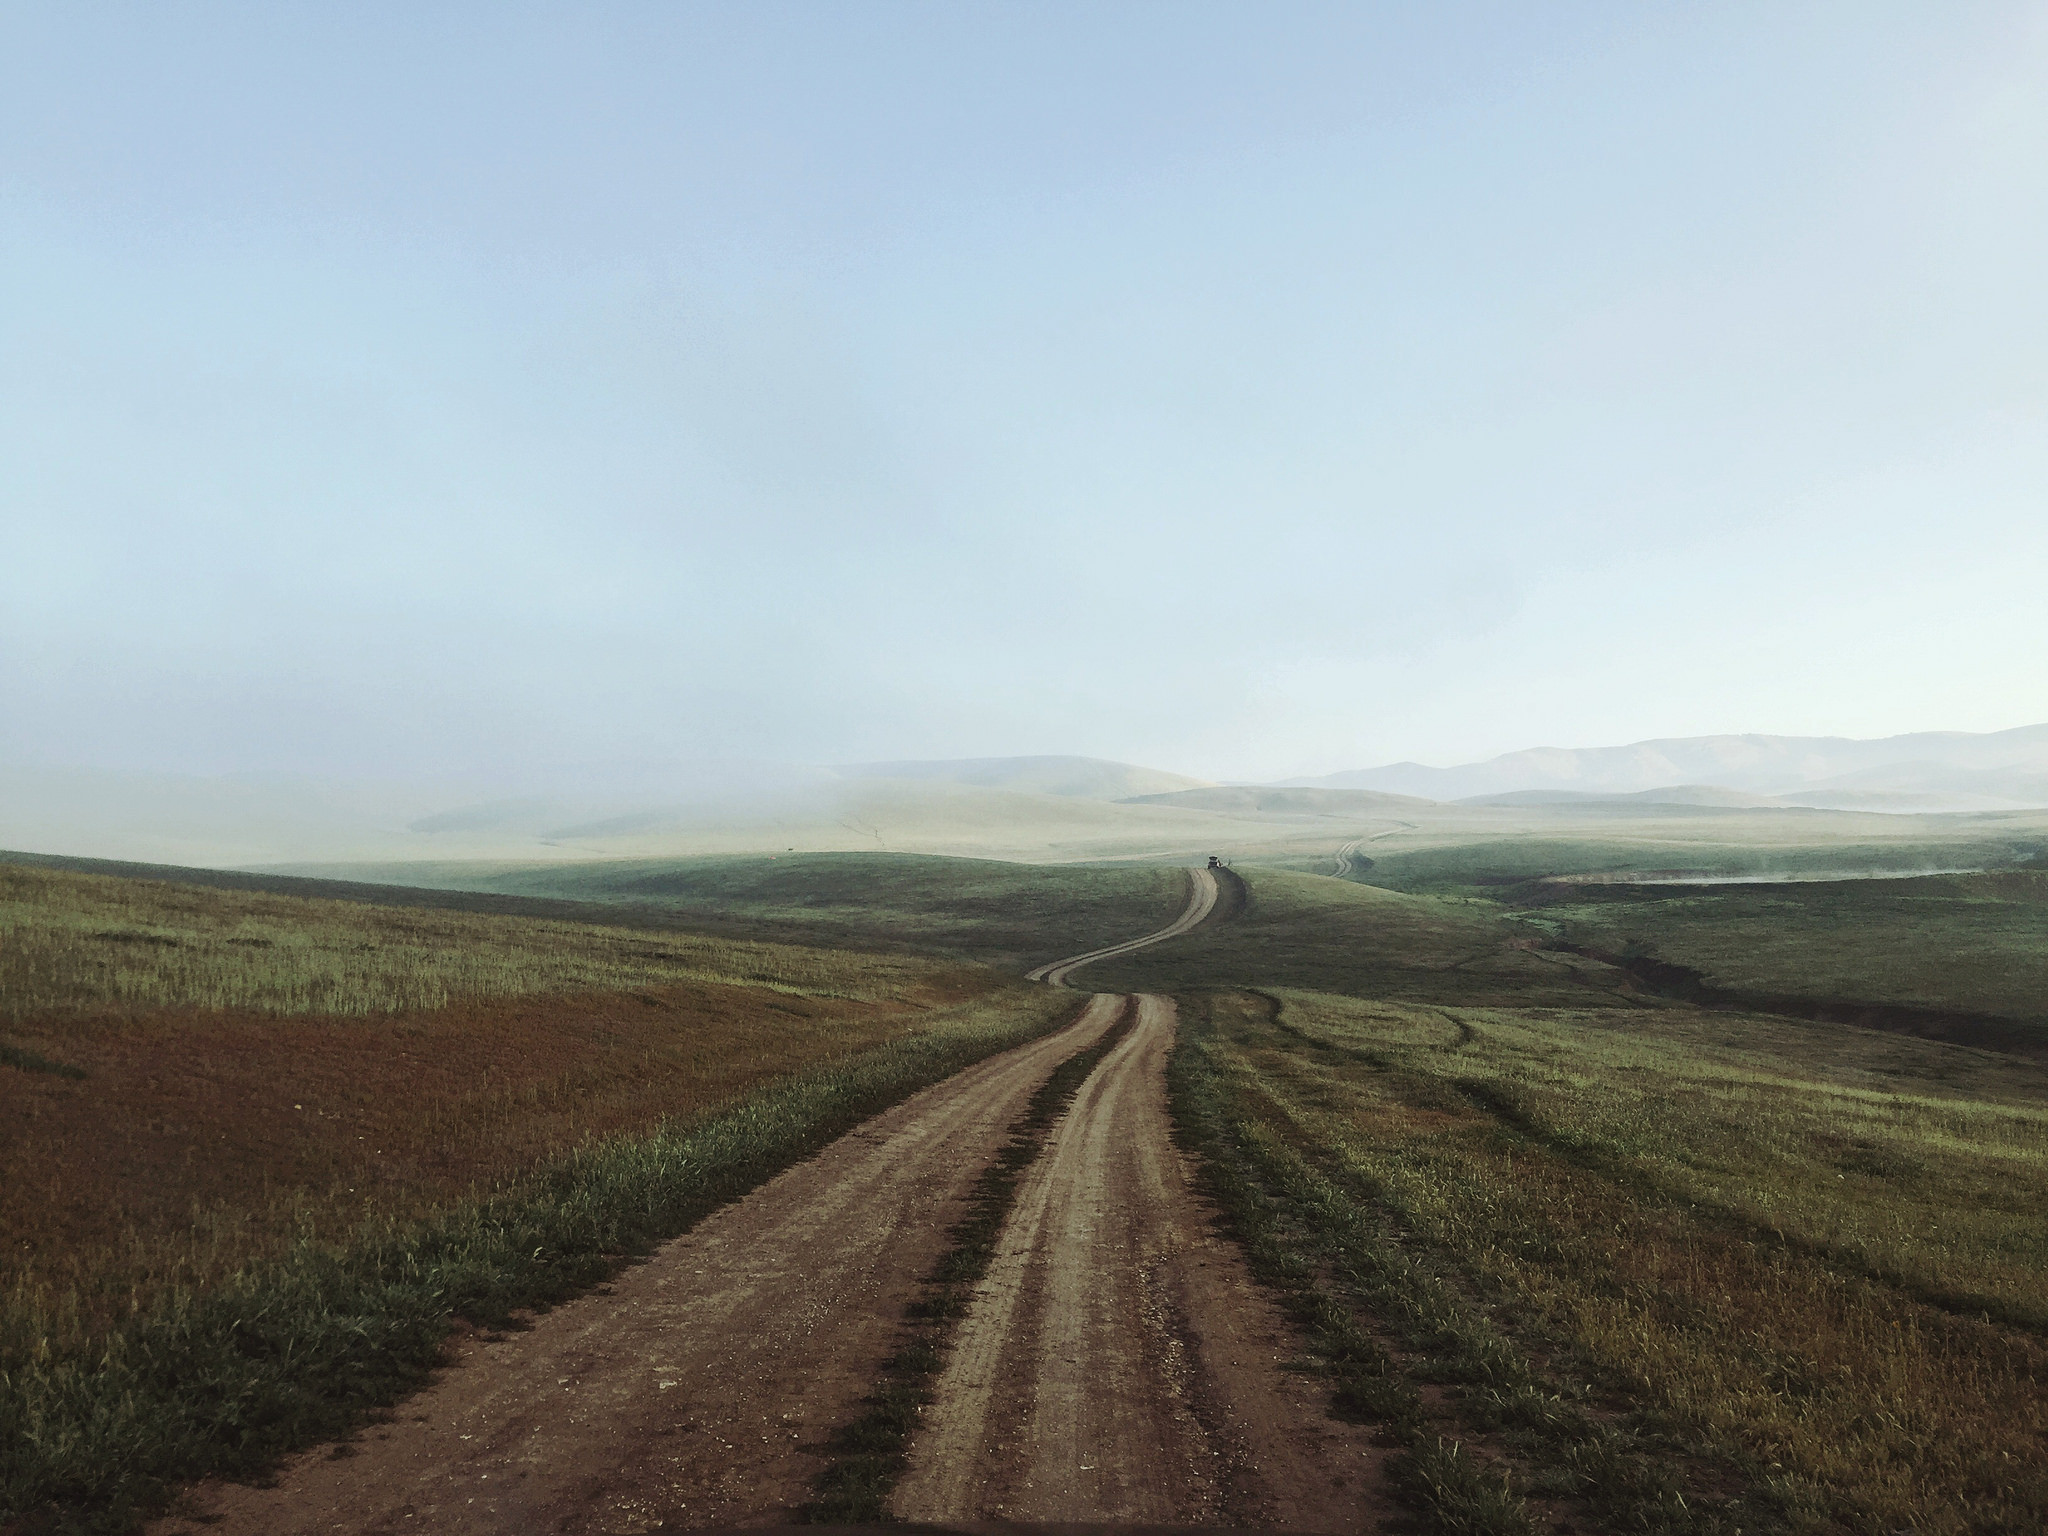 Endless rolling hills